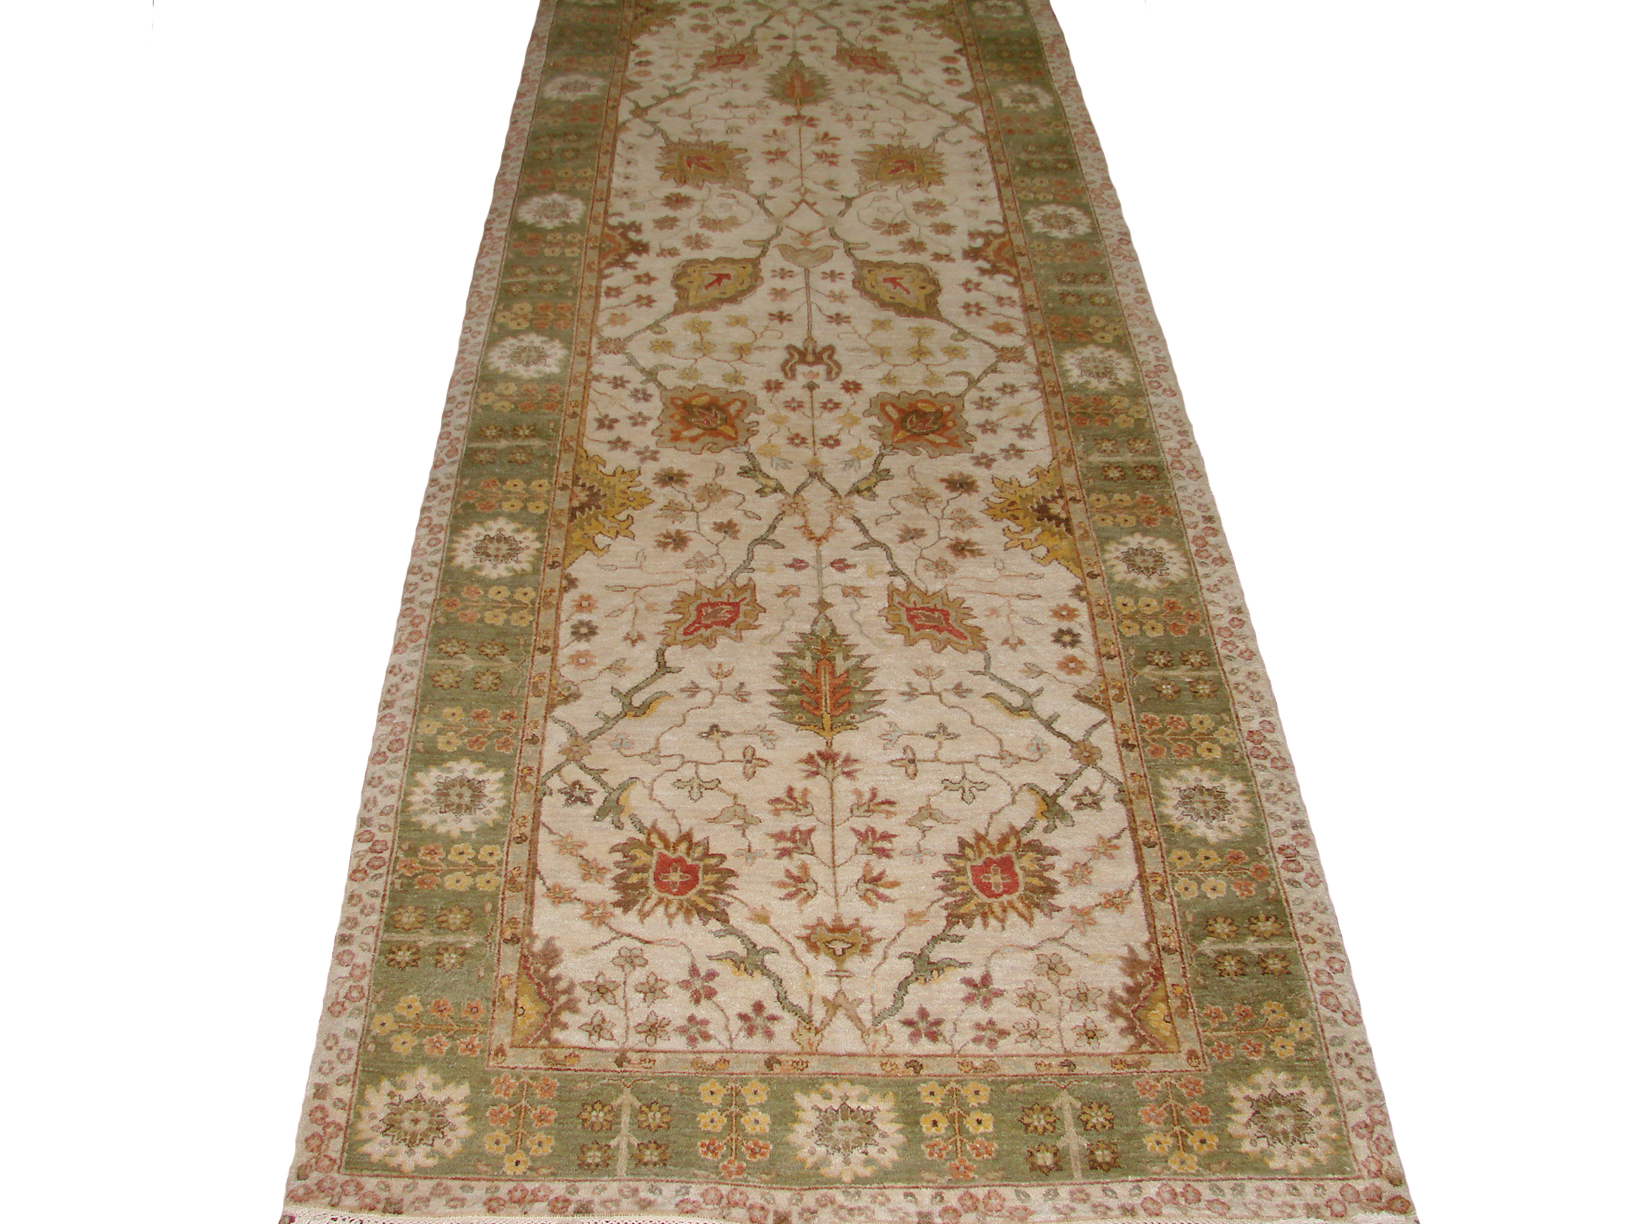 Wide Runner Traditional Hand Knotted Wool Area Rug - MR20304